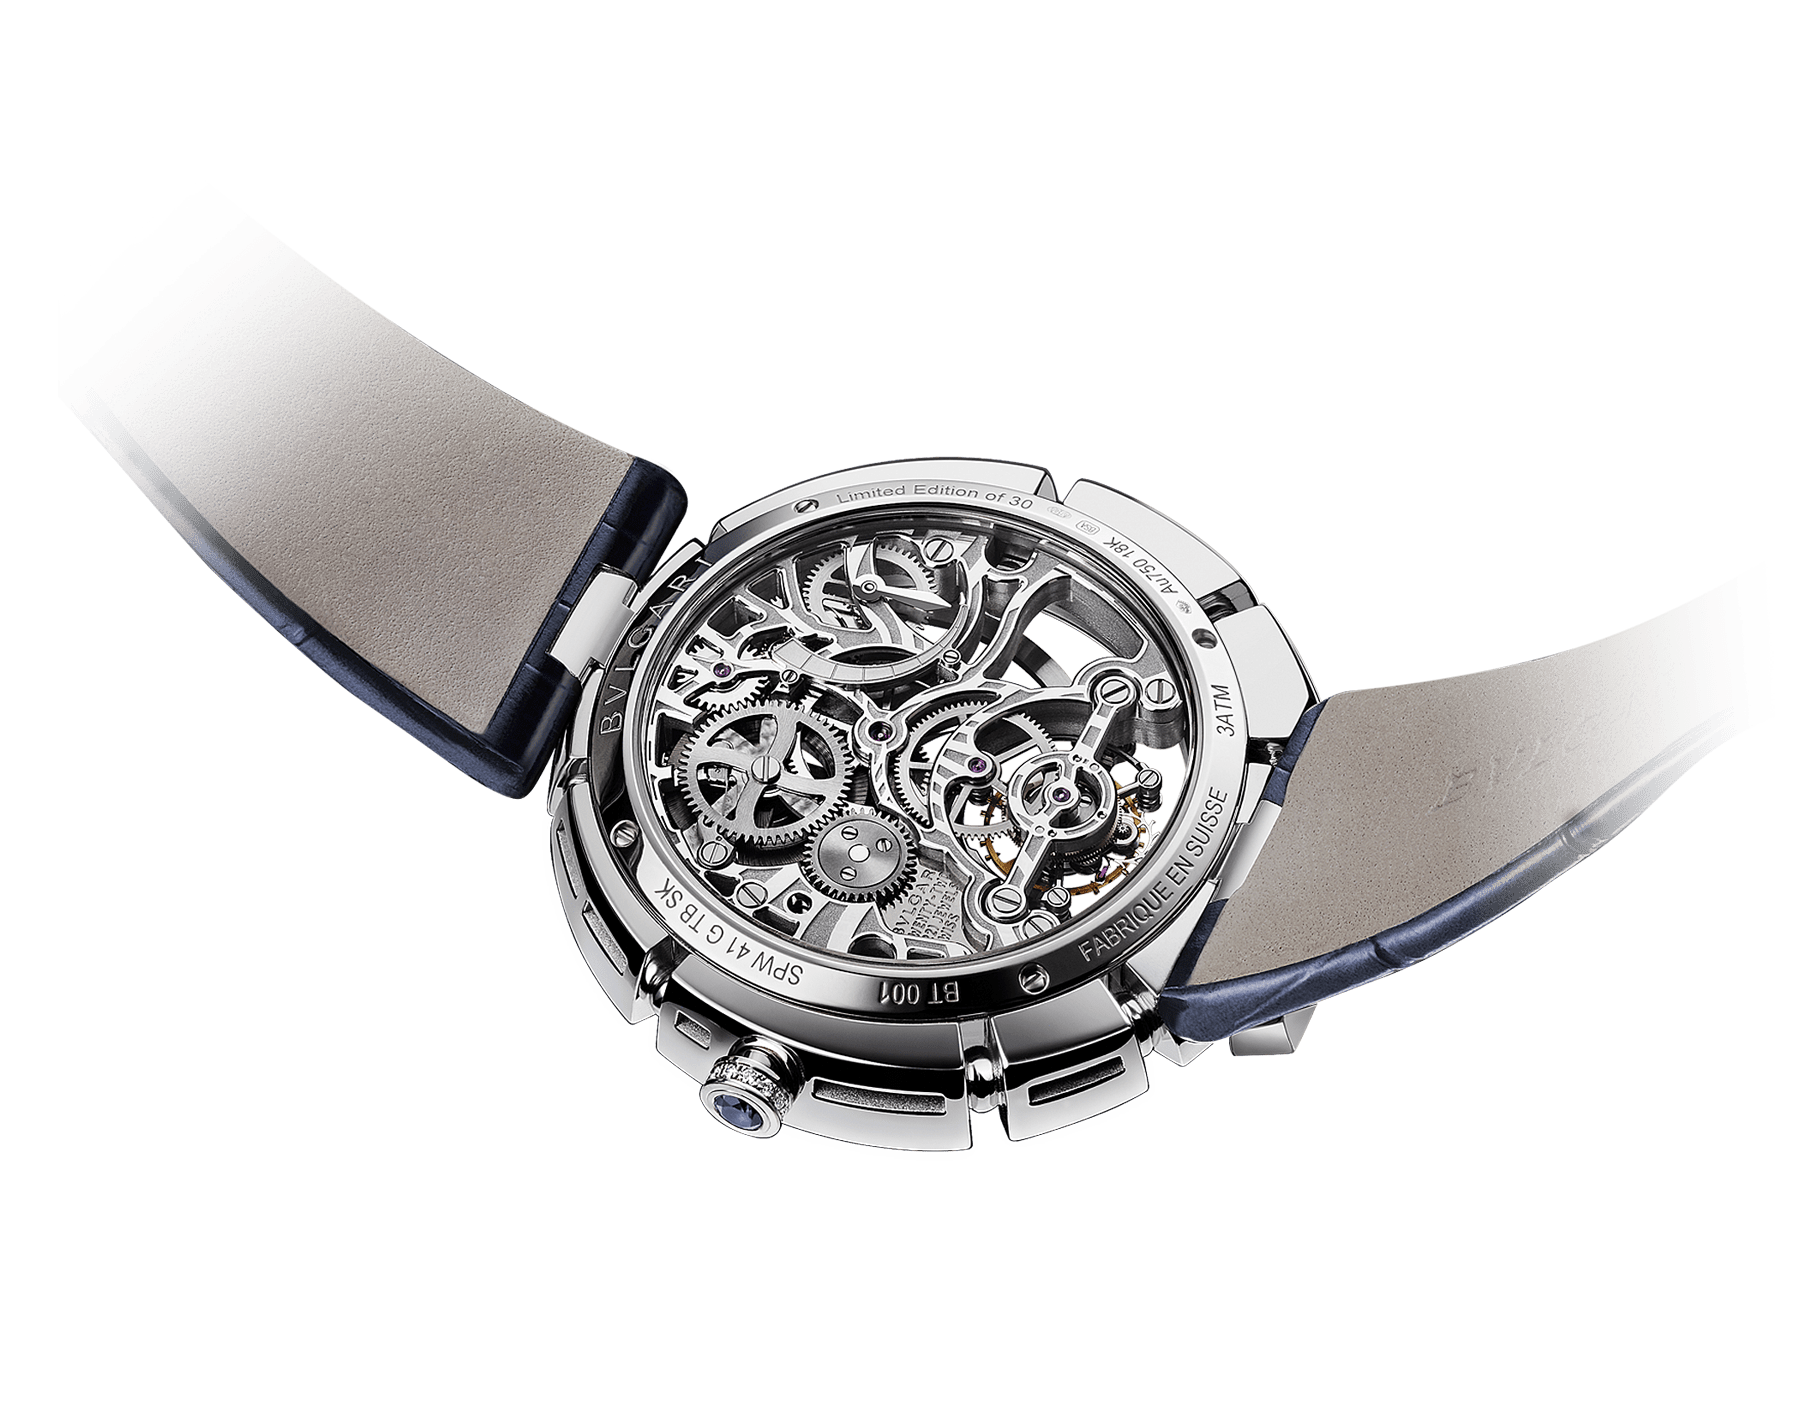 Serpenti Incantati Limited Edition watch with mechanical manufacture skeletonized movement, tourbillon and manual winding. 18 kt white gold case set with brilliant cut diamonds, transparent dial and blue alligator bracelet. 102541 image 3